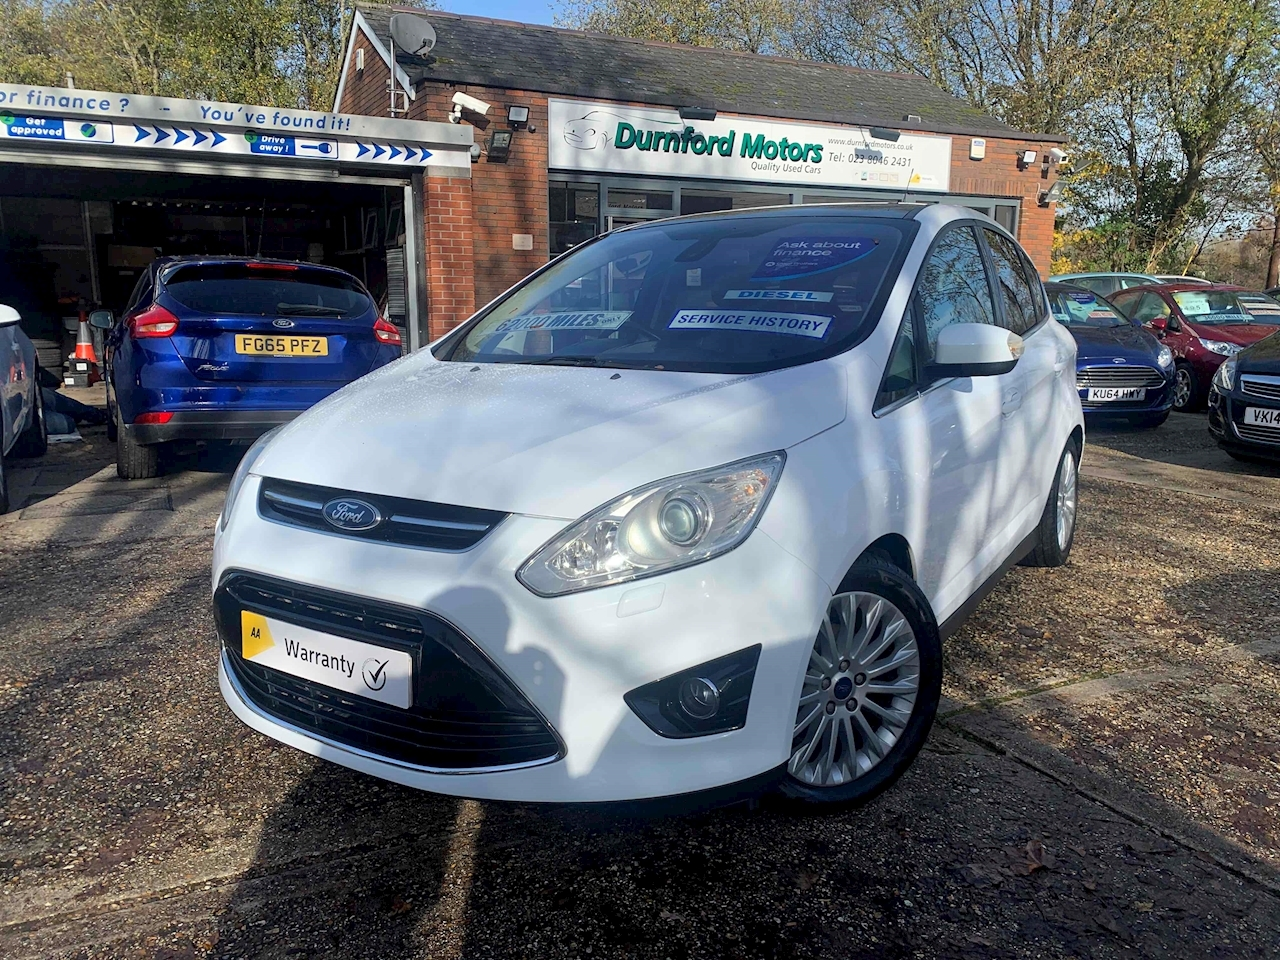 Ford C-Max Titanium MPV 1.6 Manual Diesel